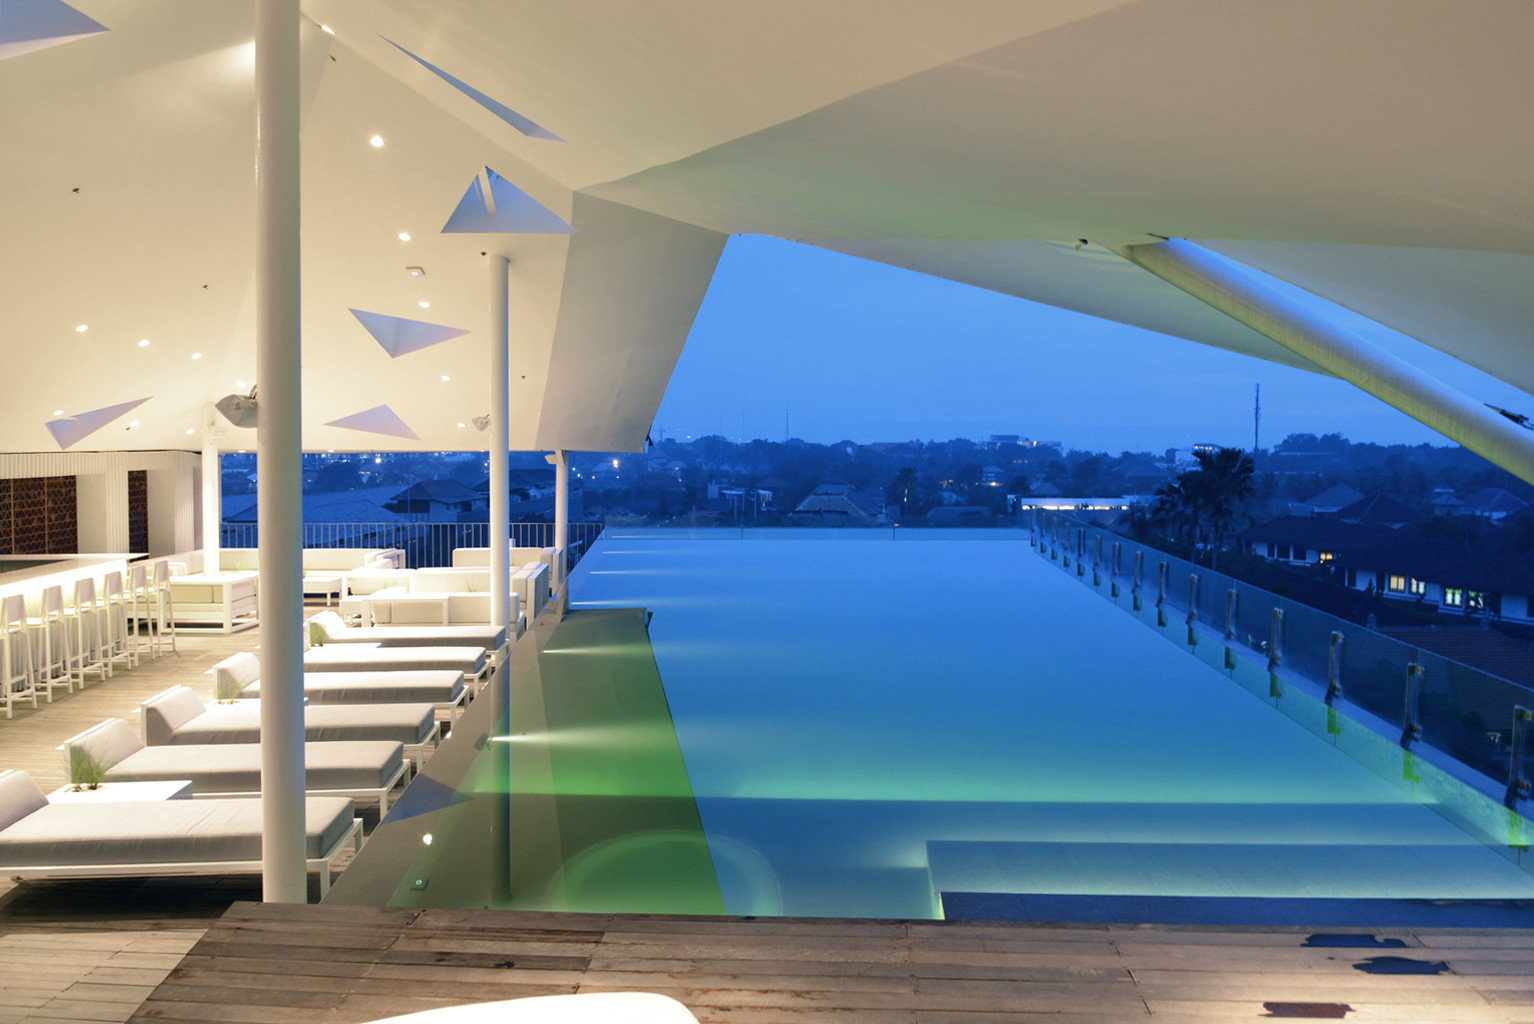 Elegant Luxury Modern Pool swimming pool leisure structure Architecture leisure centre daylighting lighting headquarters convention center